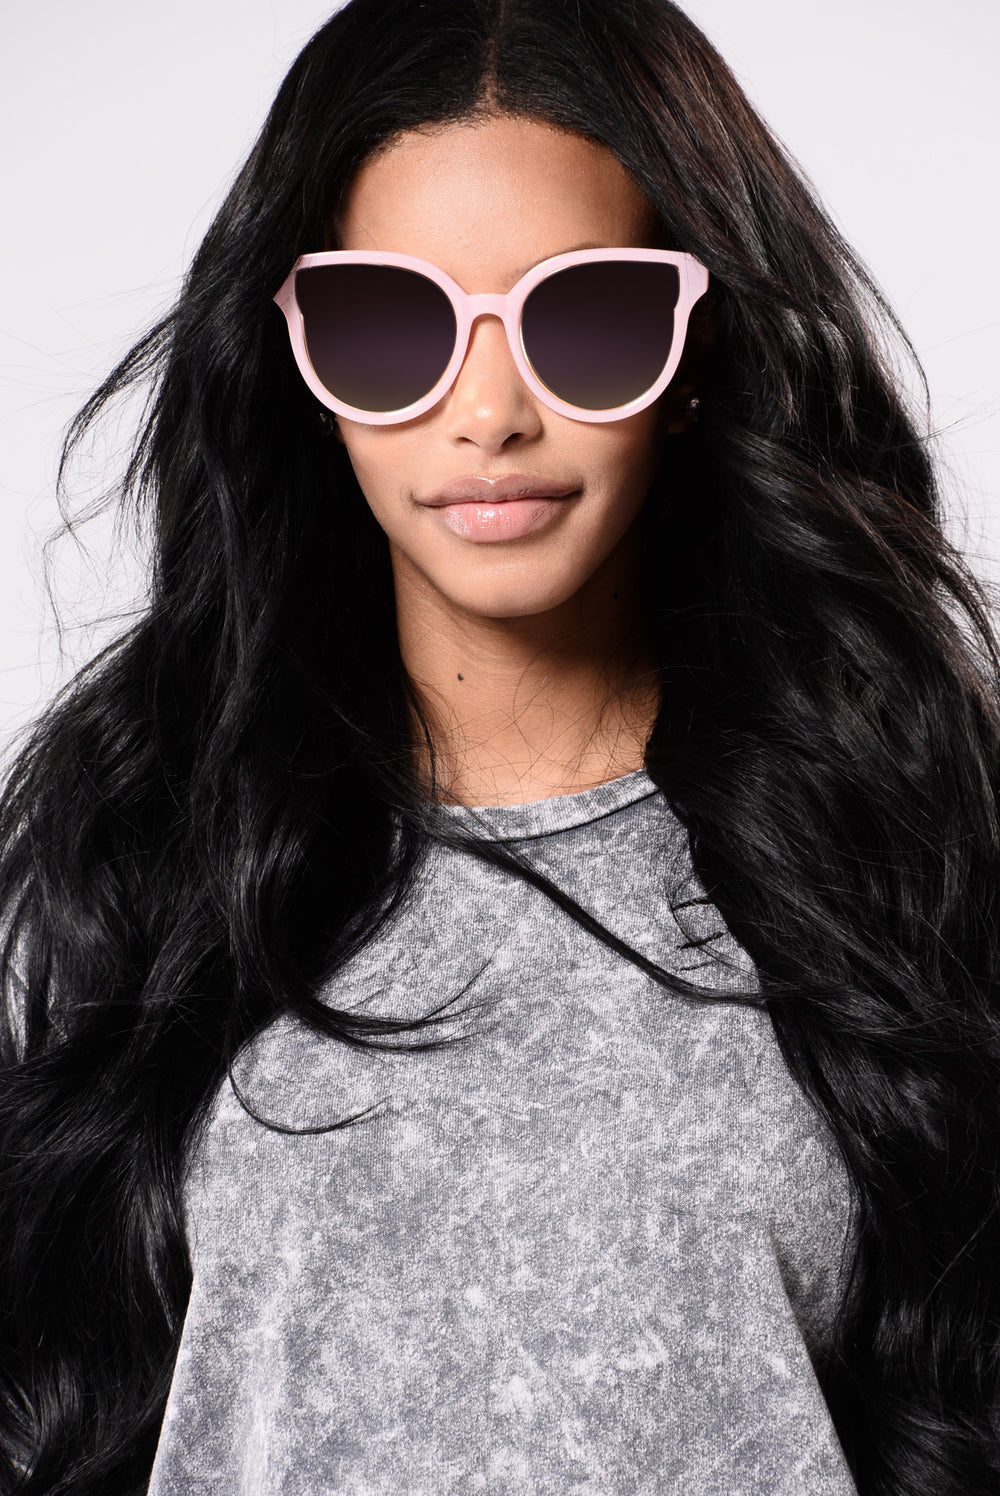 Megan Sunglasses - Pink